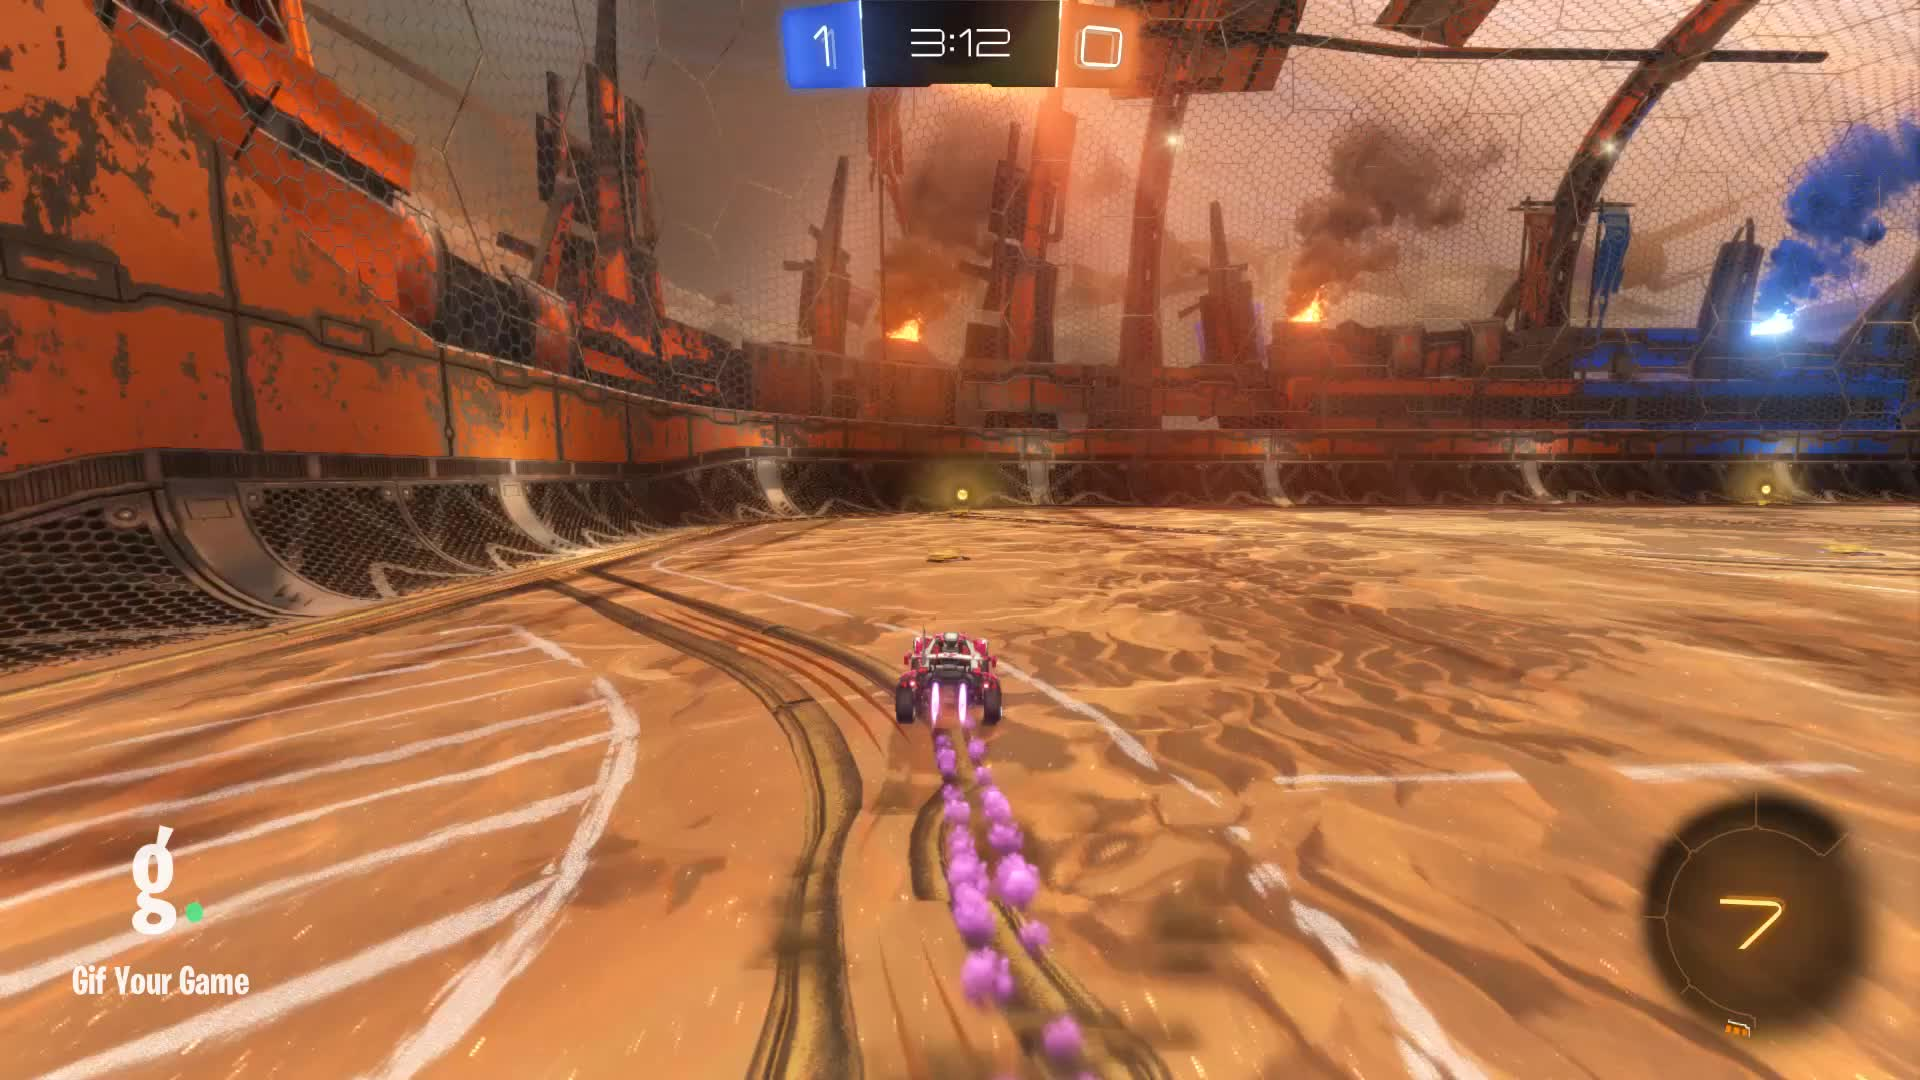 AceStyle, Gif Your Game, GifYourGame, Goal, Rocket League, RocketLeague, Goal 2: AceStyle GIFs